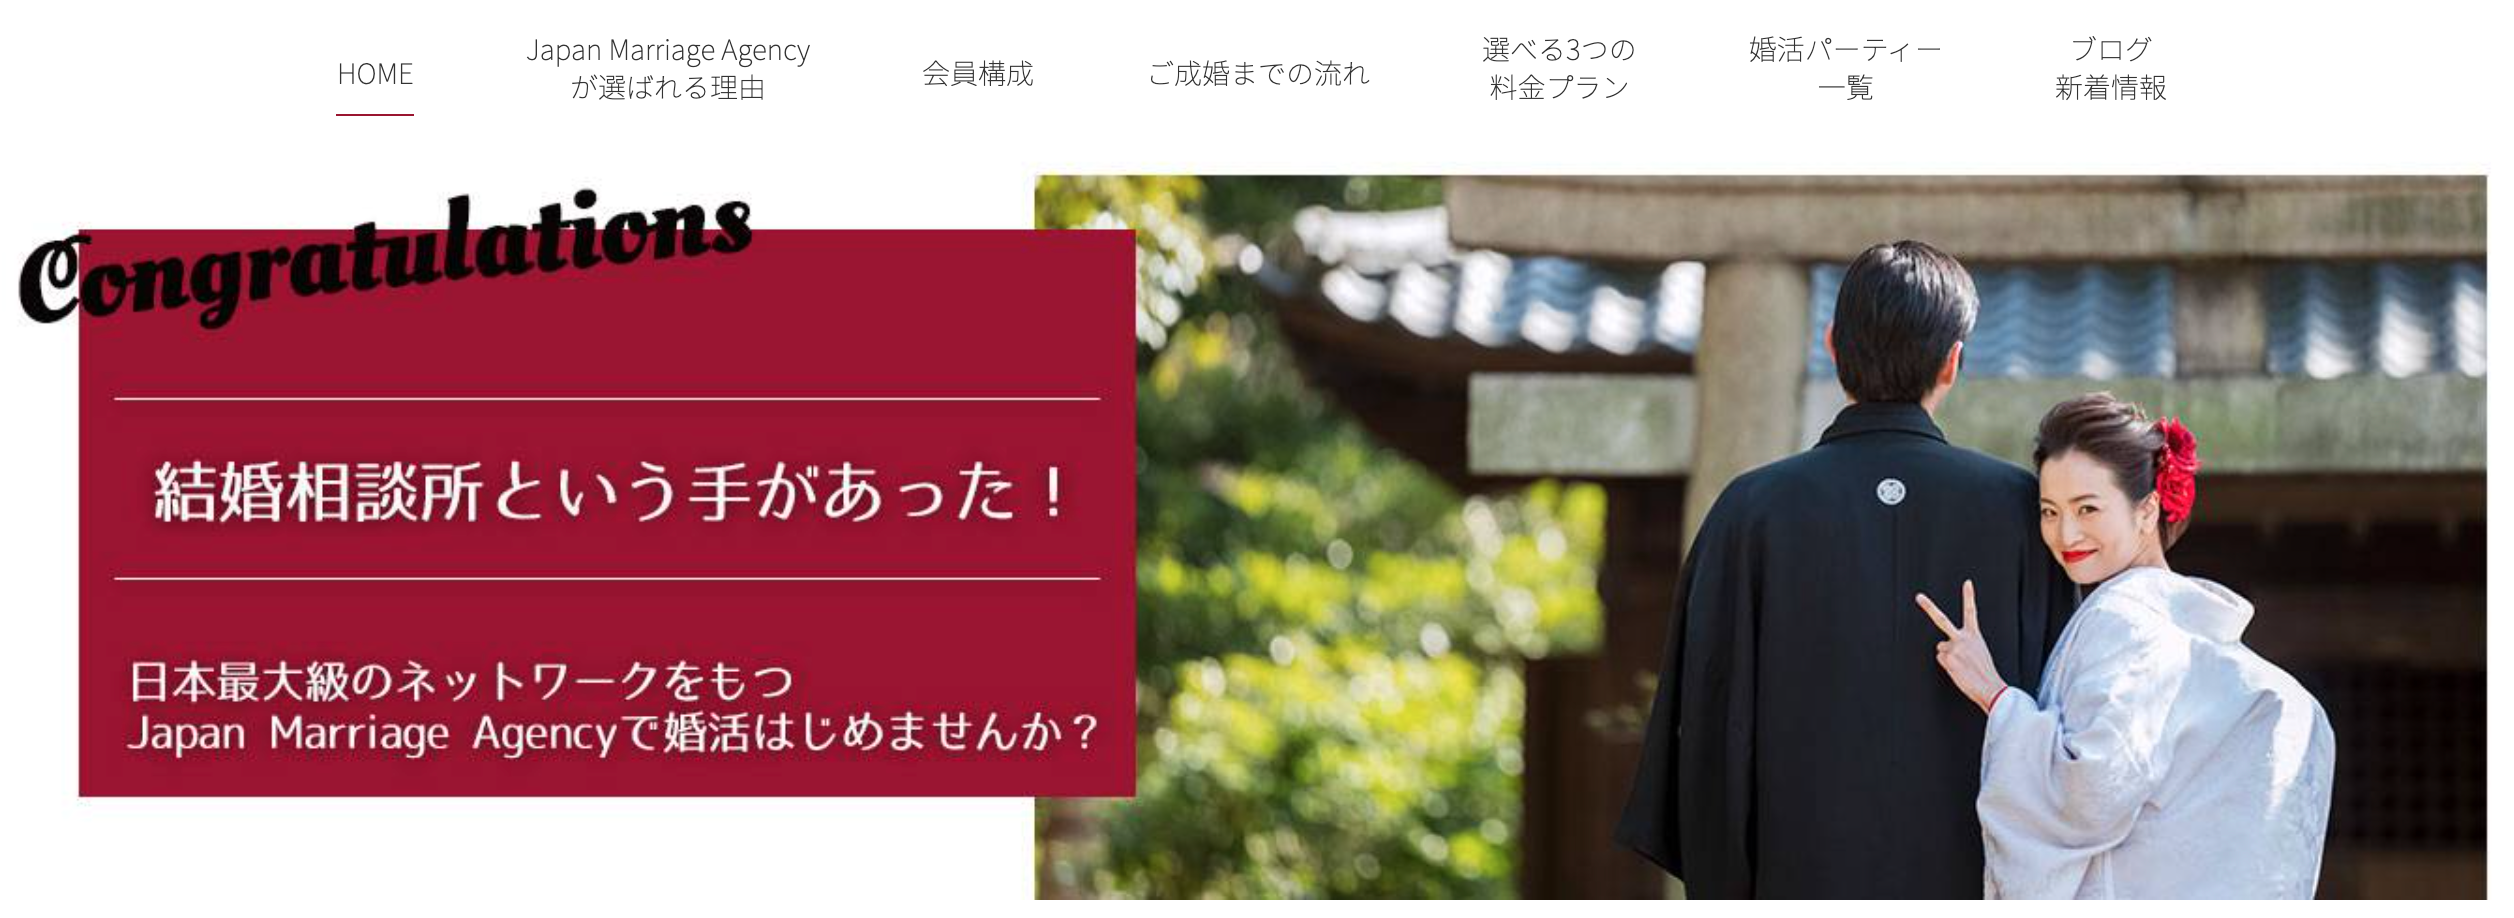 Japan Marriage AgencyのHP